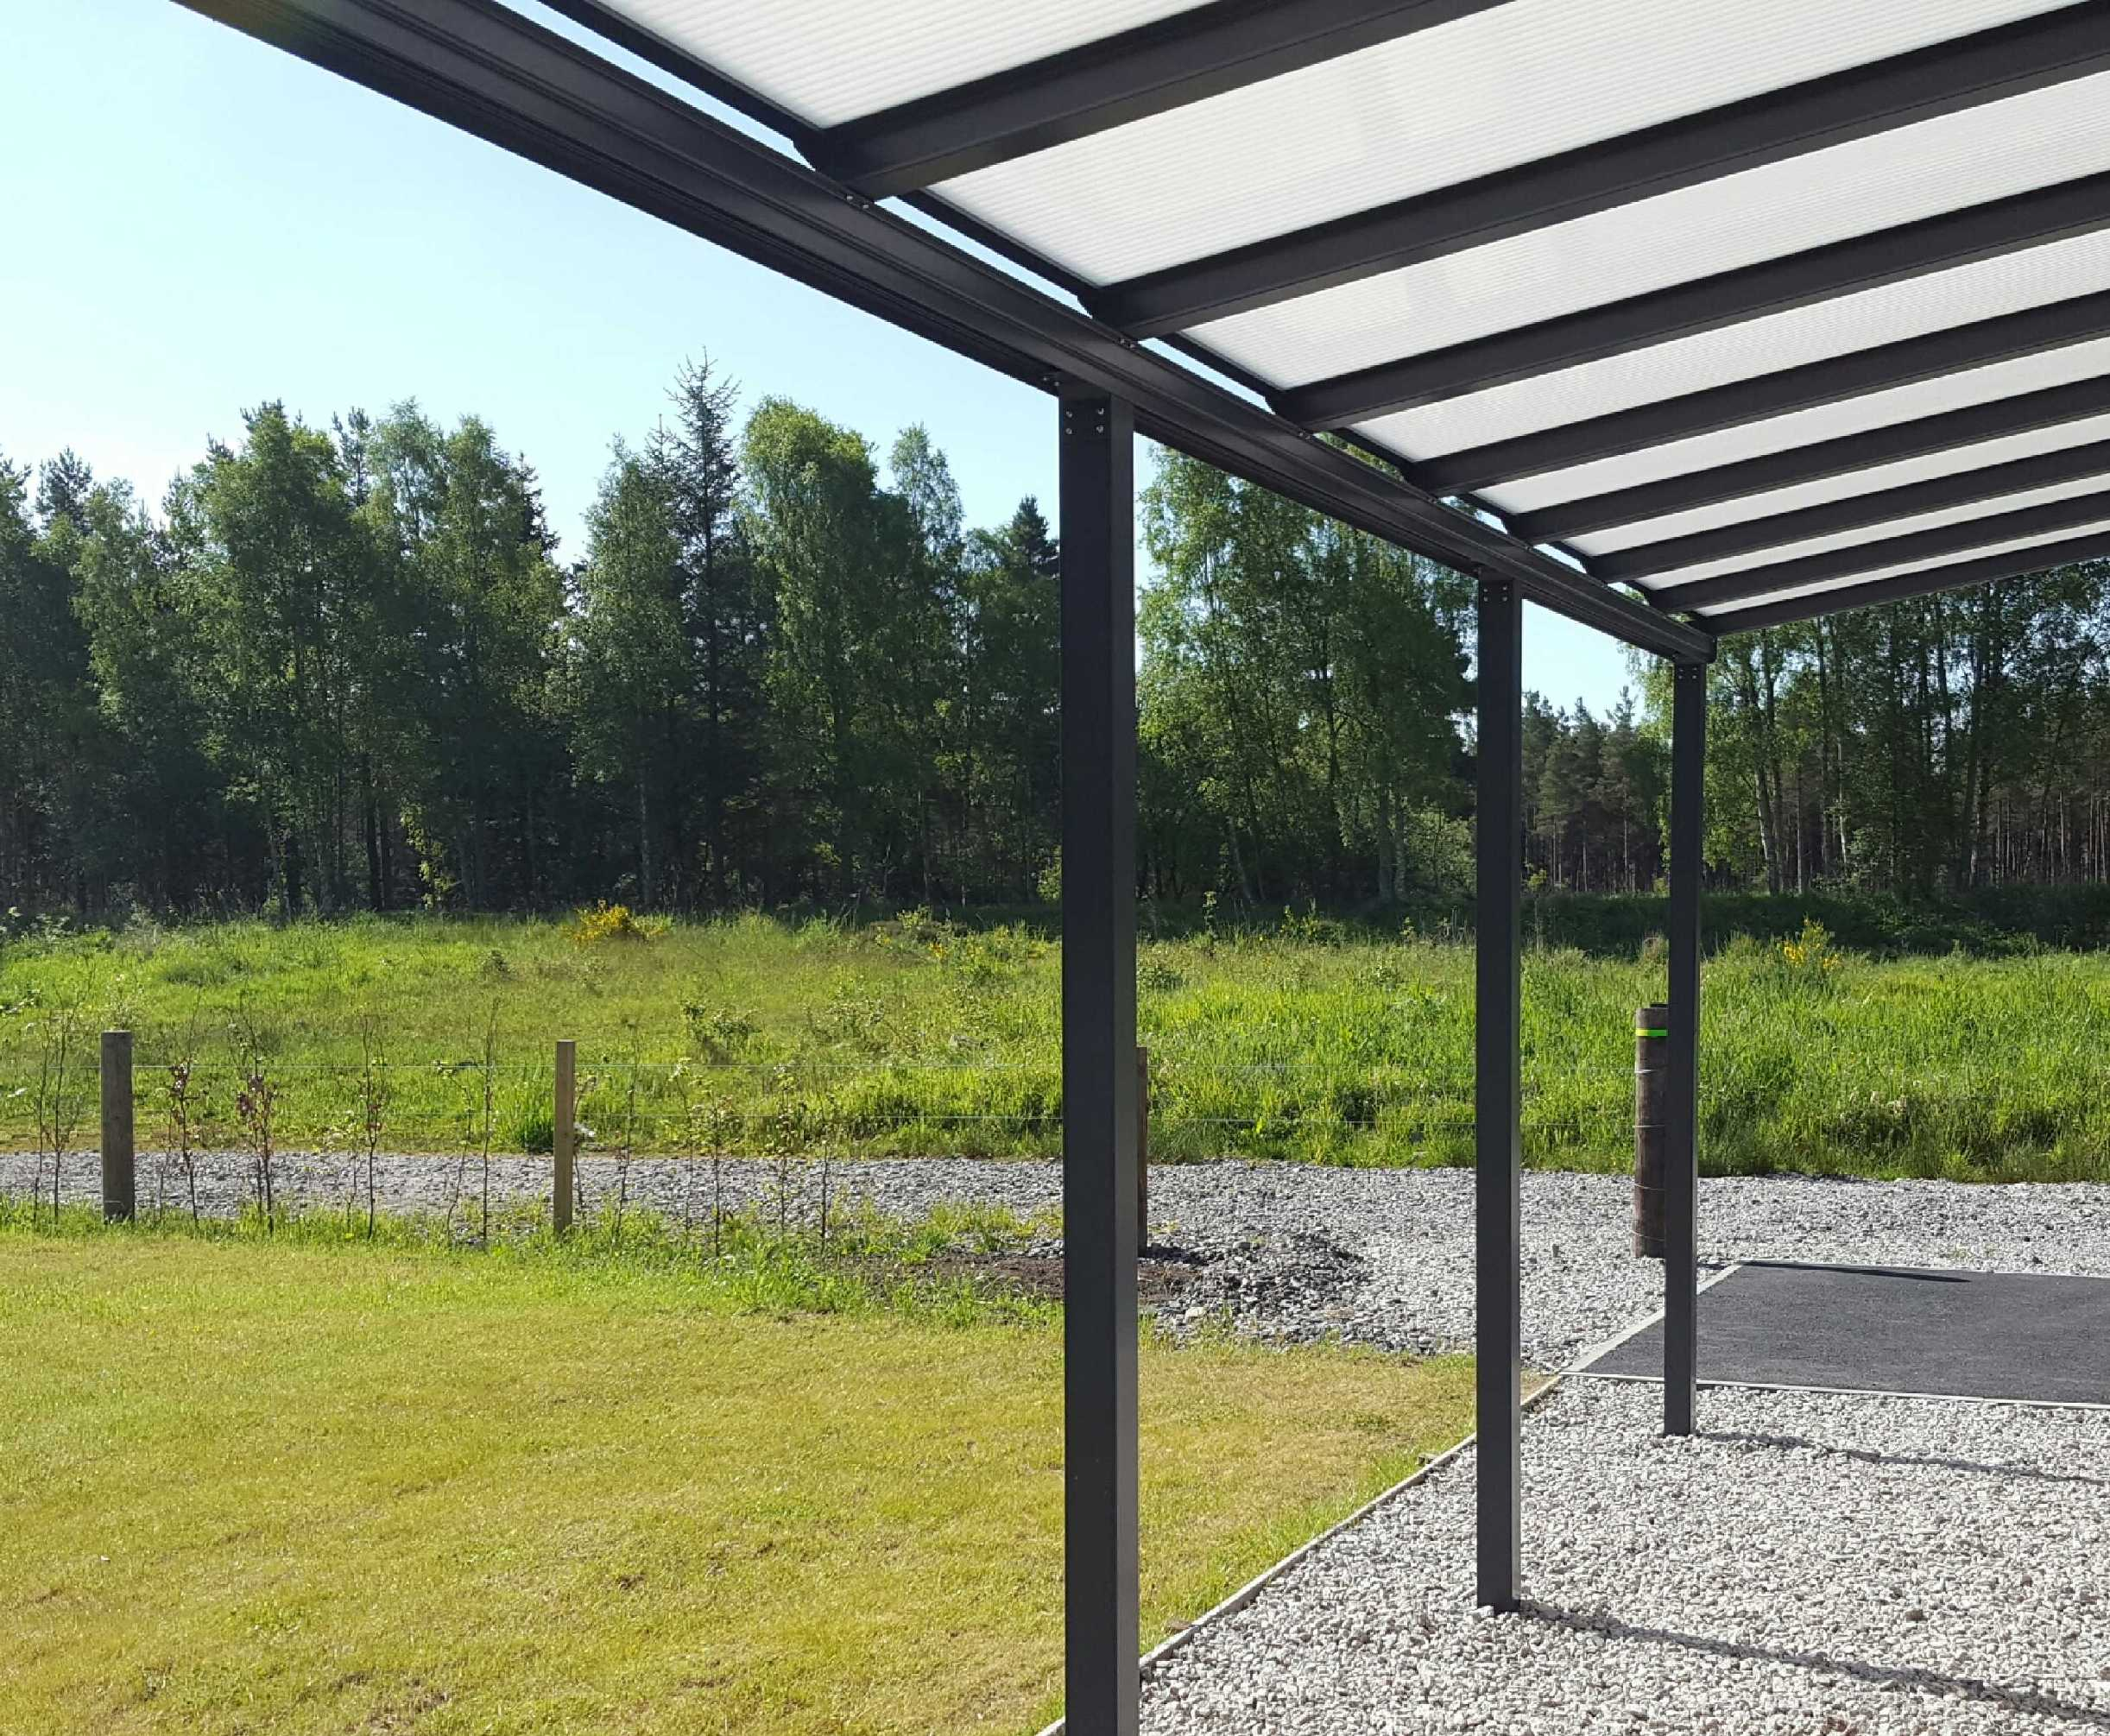 Omega Smart Lean-To Canopy, Anthracite Grey, 16mm Polycarbonate Glazing - 7.8m (W) x 3.5m (P), (4) Supporting Posts